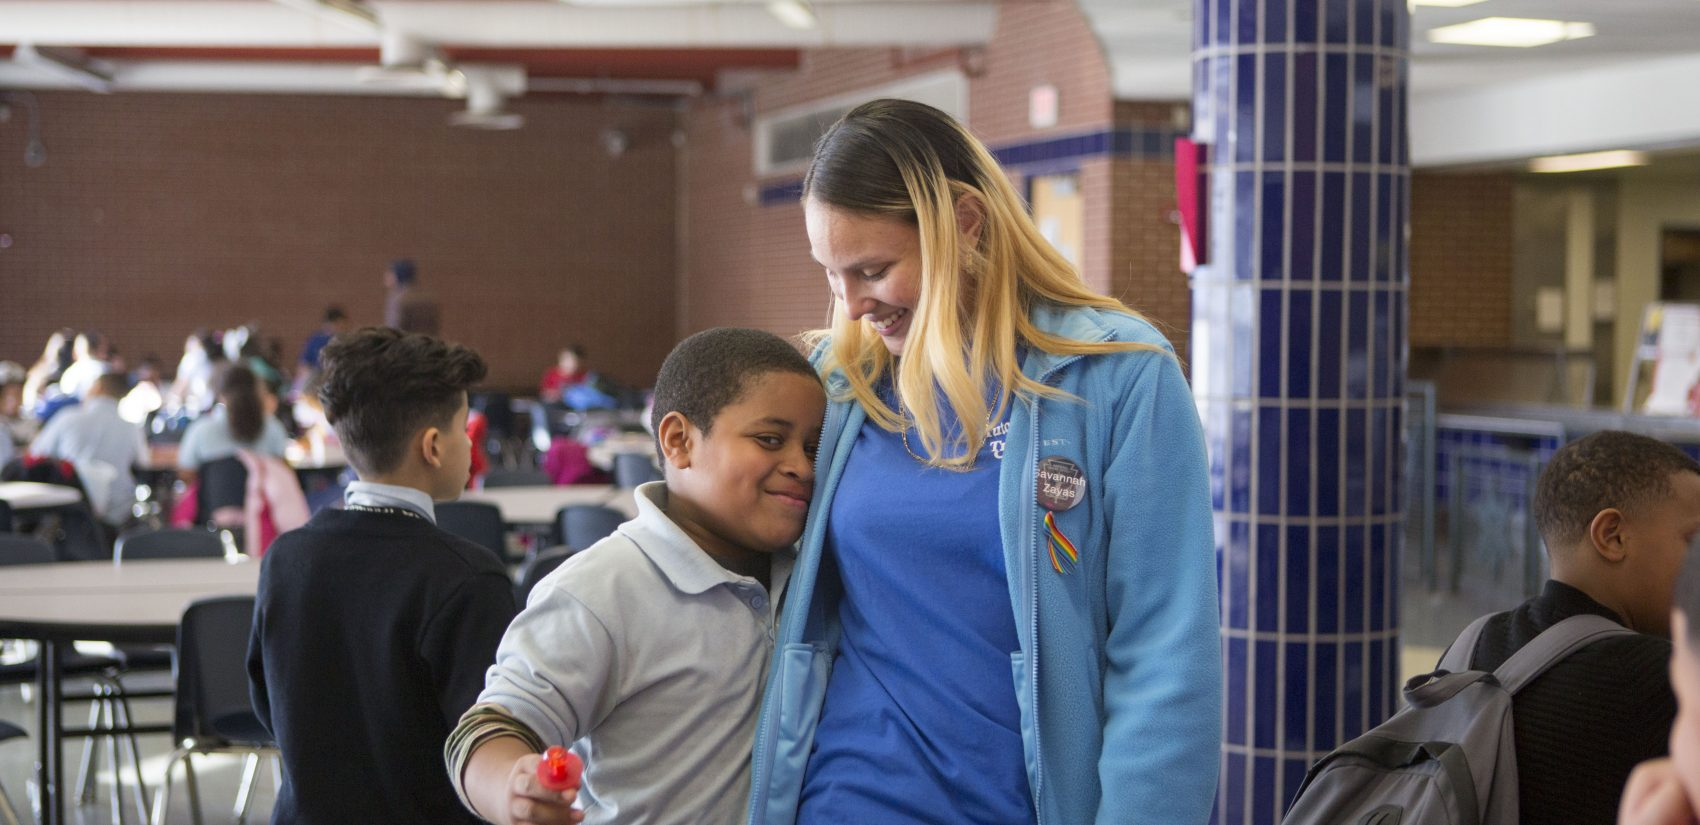 </b> Savannah, in her role as a teen leader in The Providence Center's after school program, hugs an elementary school student. (Jessica Kourkounis/For Keystone Crossroads)